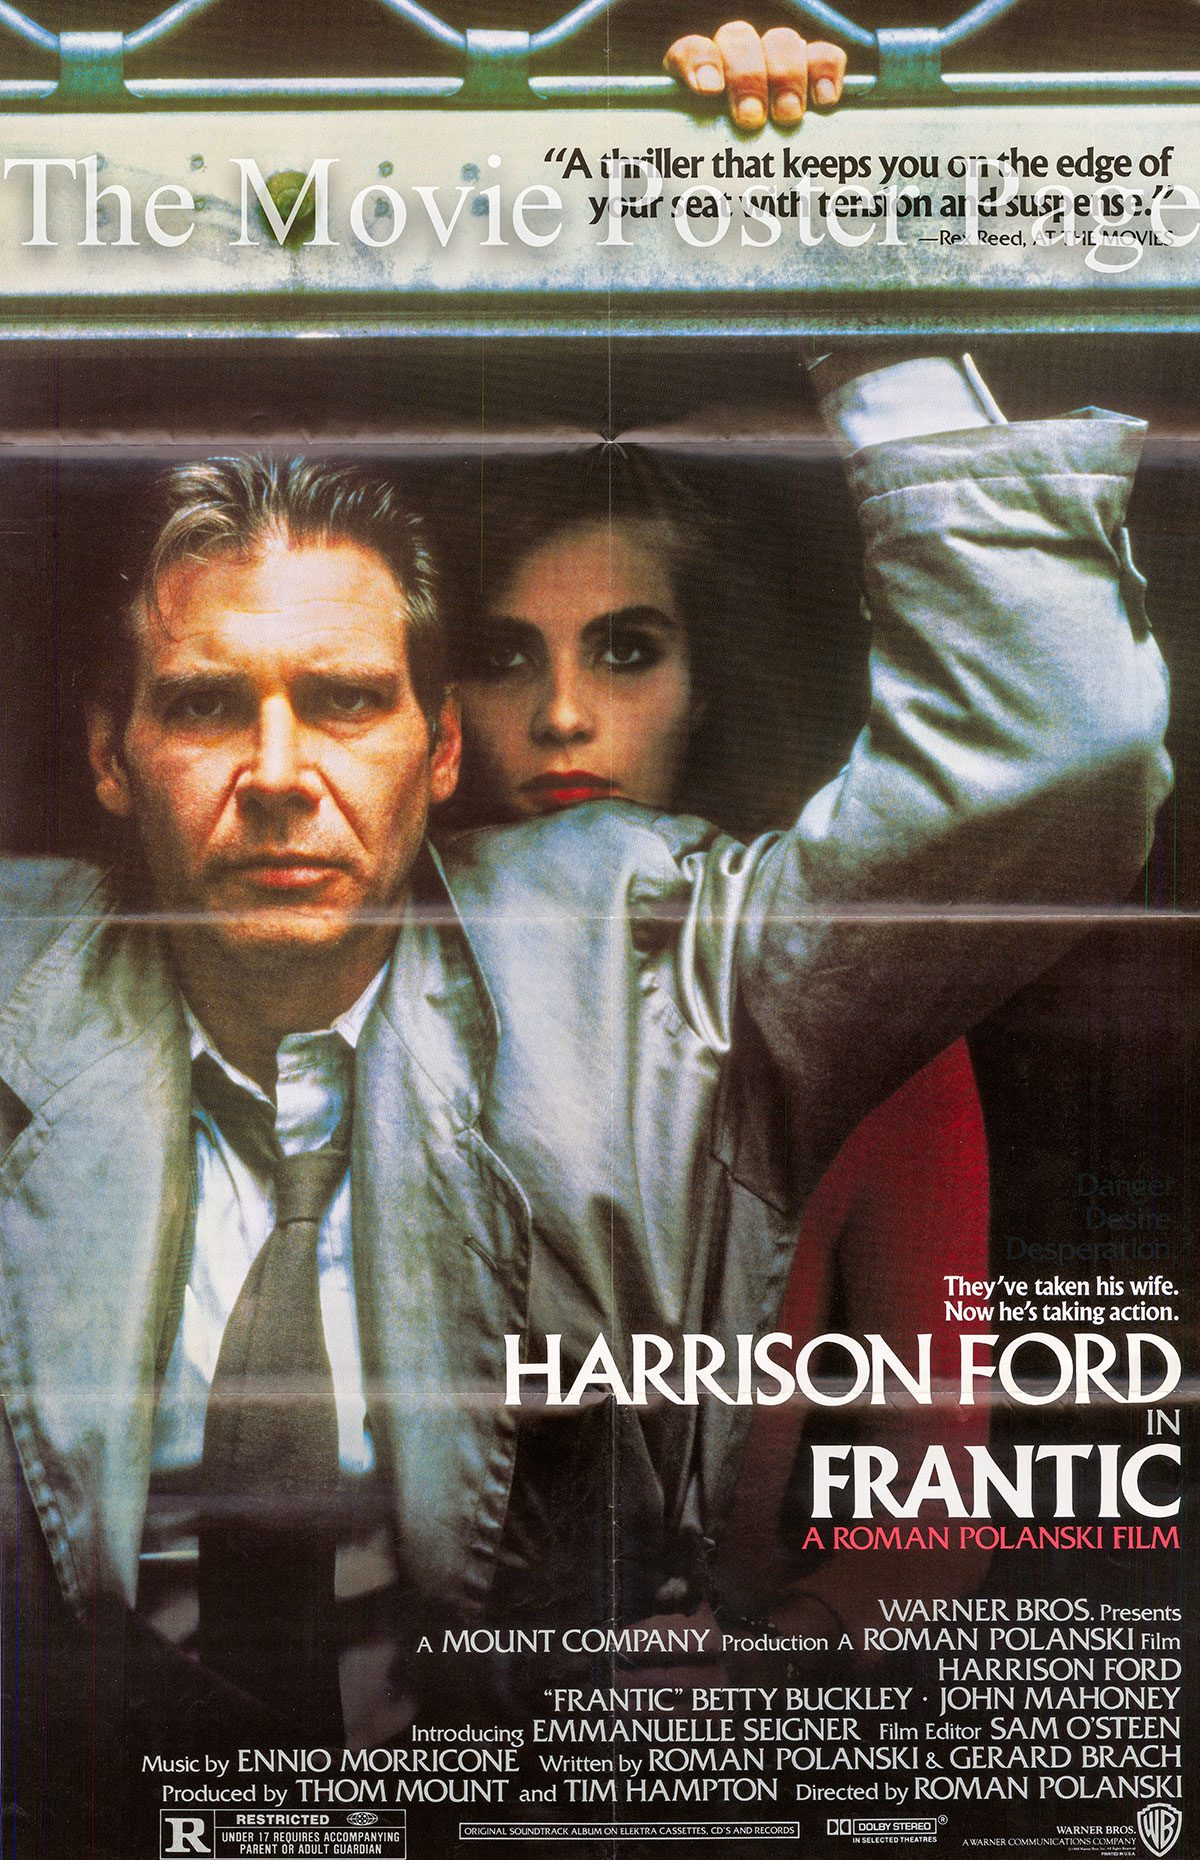 Pictured is a US one-sheet poster for the 1988 Roman Polanski film Frantic starring Harrison Ford.